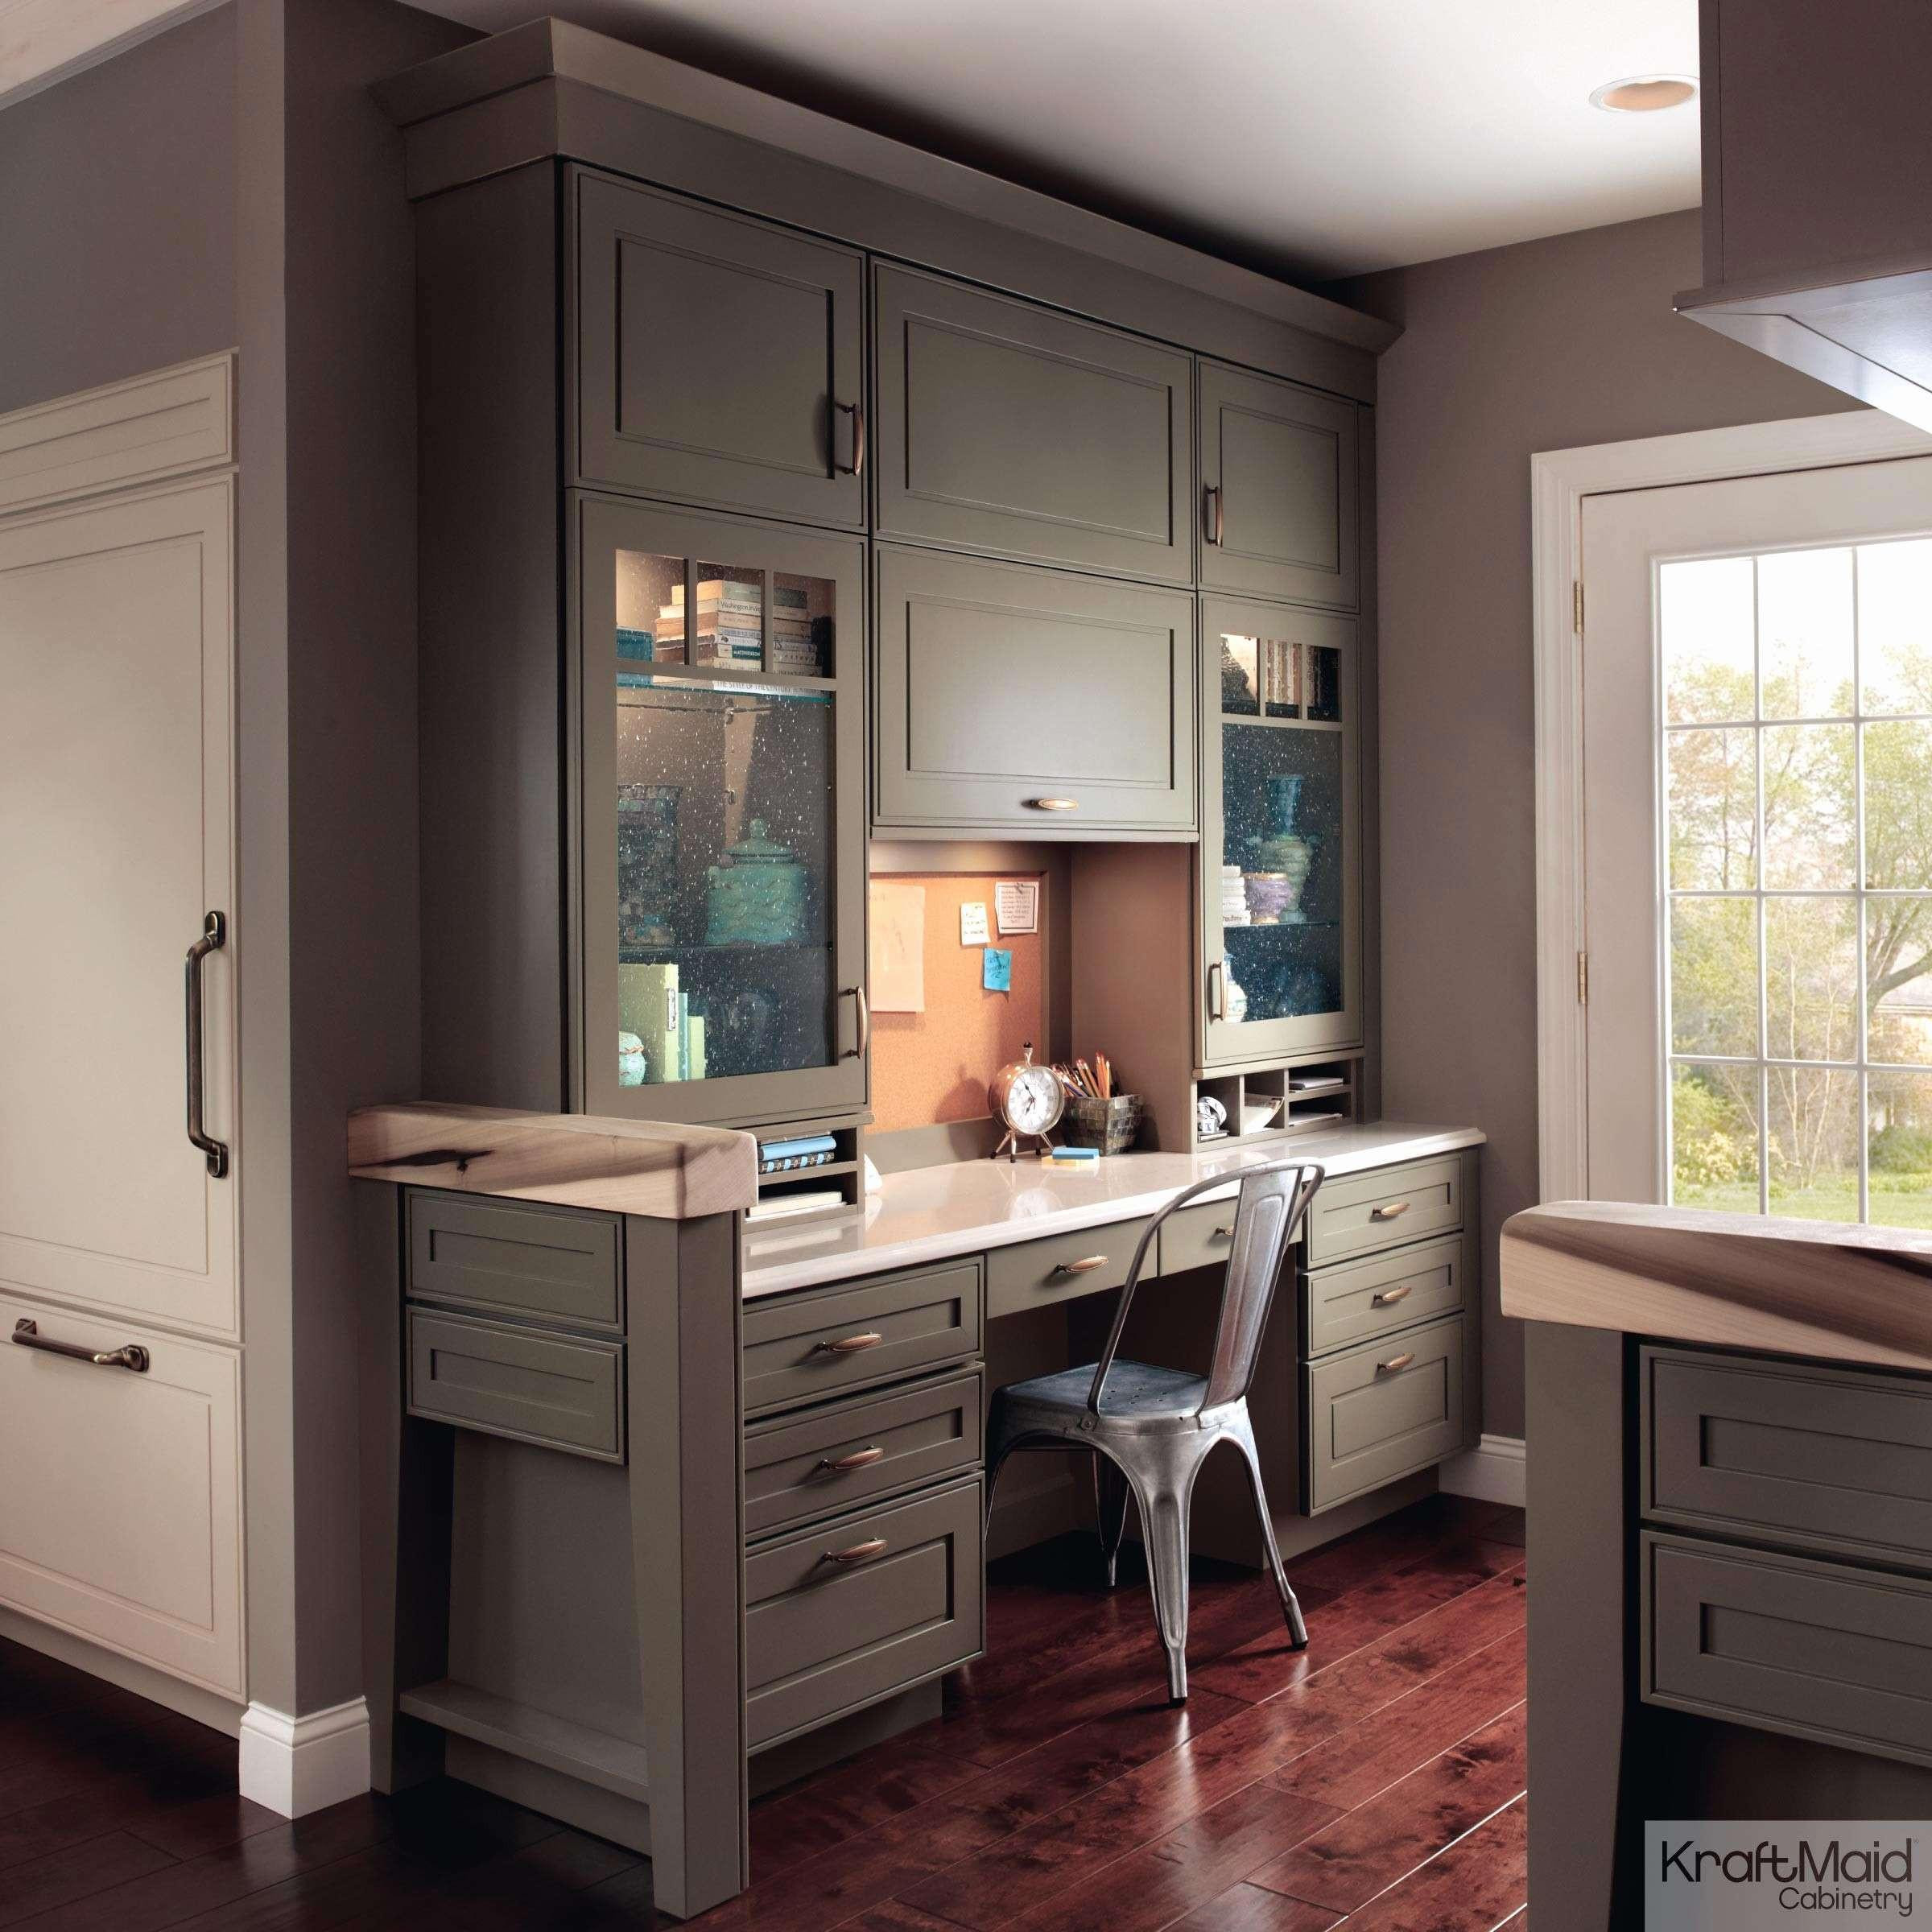 hardwood flooring nz of 10 best of maple kitchen cabinets with hardwood floors concept with cool kitchen backsplash pickled maple kitchen cabinets awesome kitchen cabinet 0d kitchen